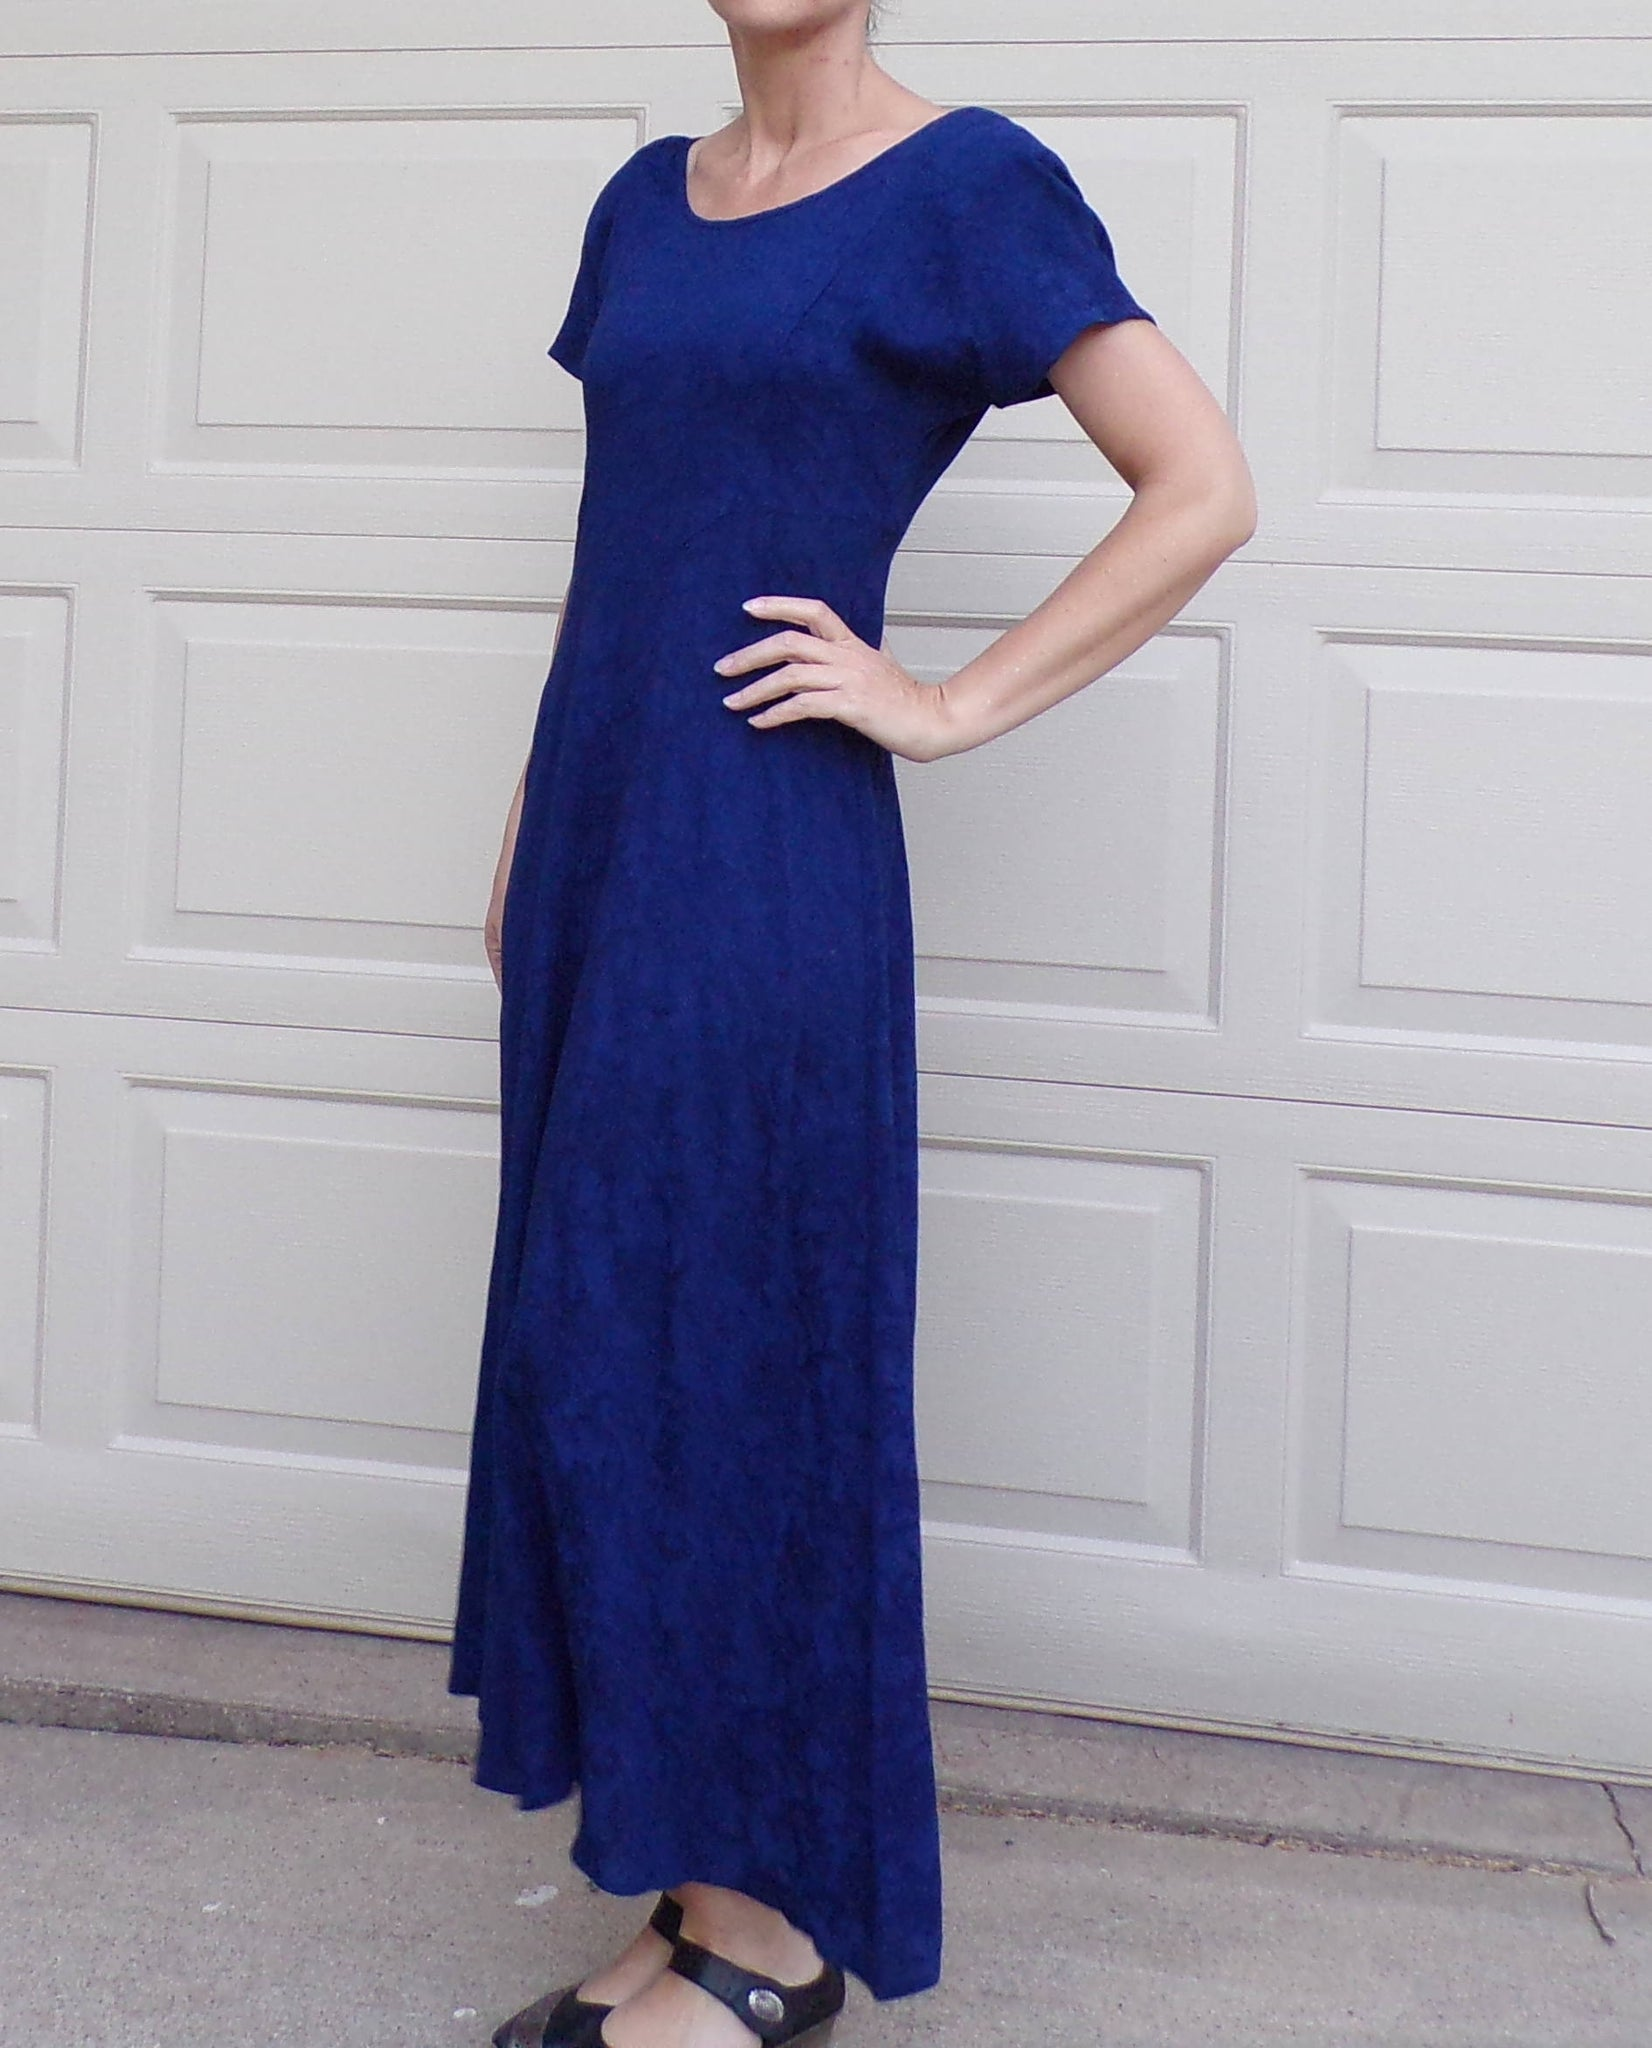 ROYAL BLUE 1990's fit and flare DRESS long modest S 90's (G7)